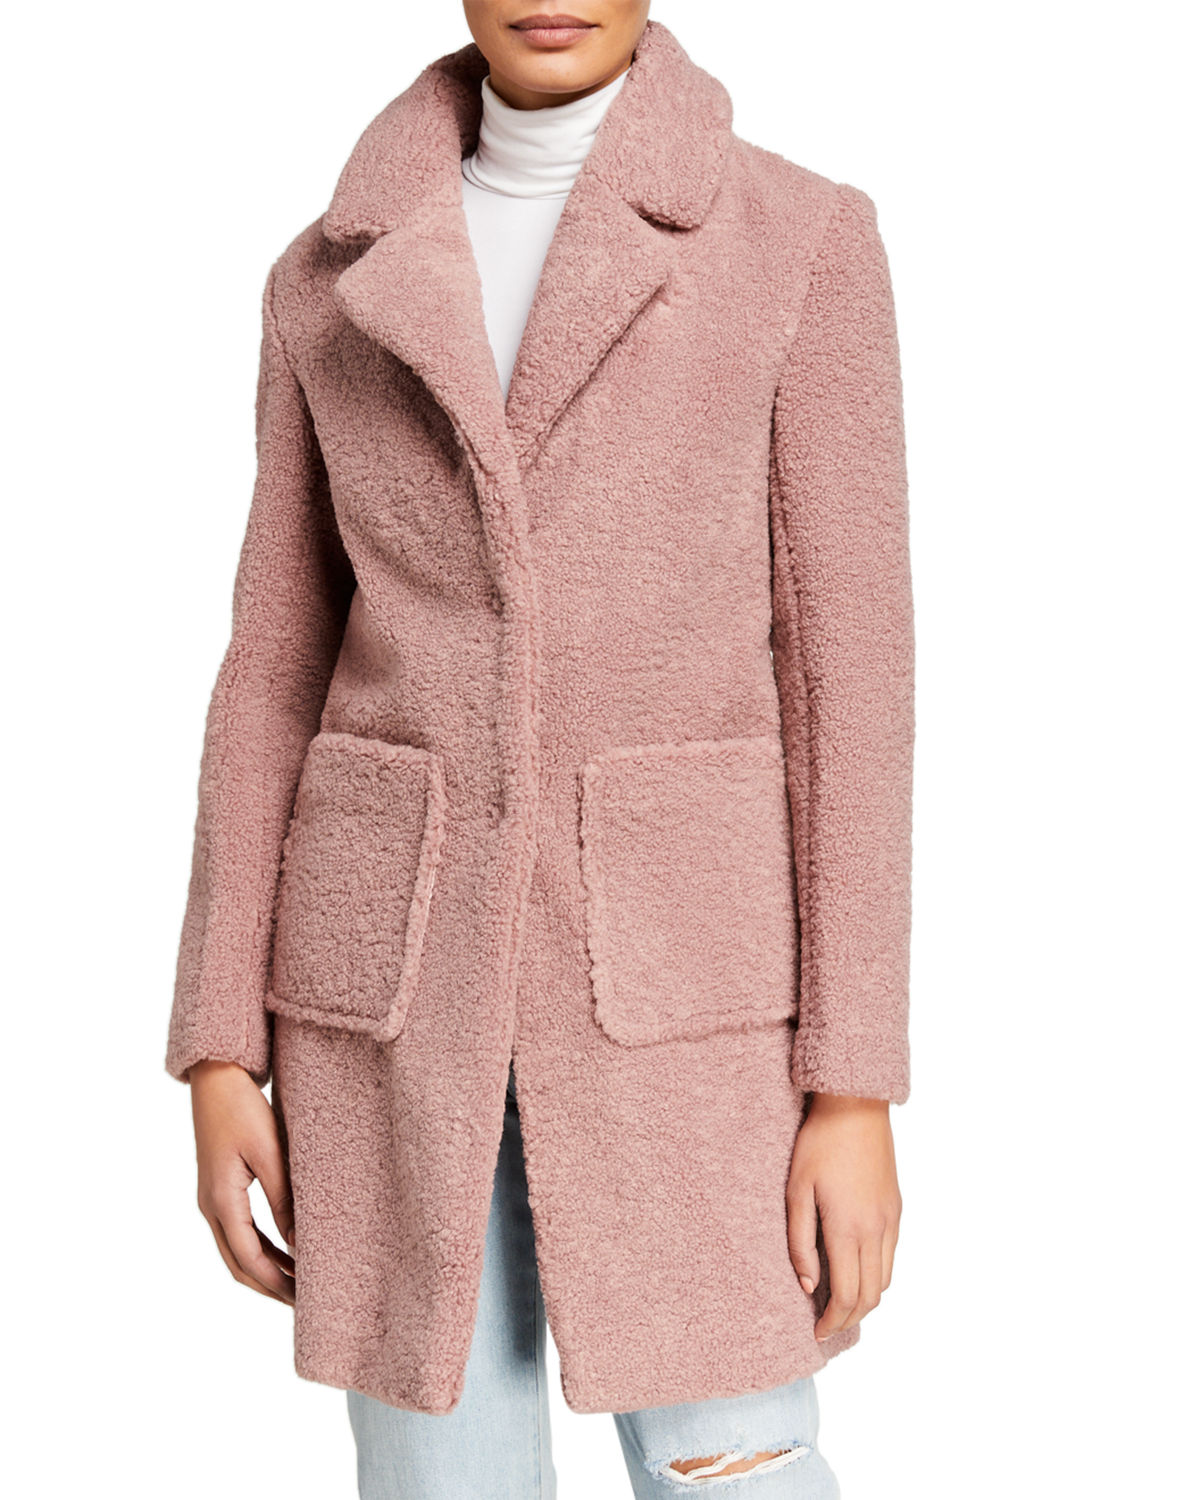 French Connection Coats FAUX FUR SHEARLING 3/4 COAT